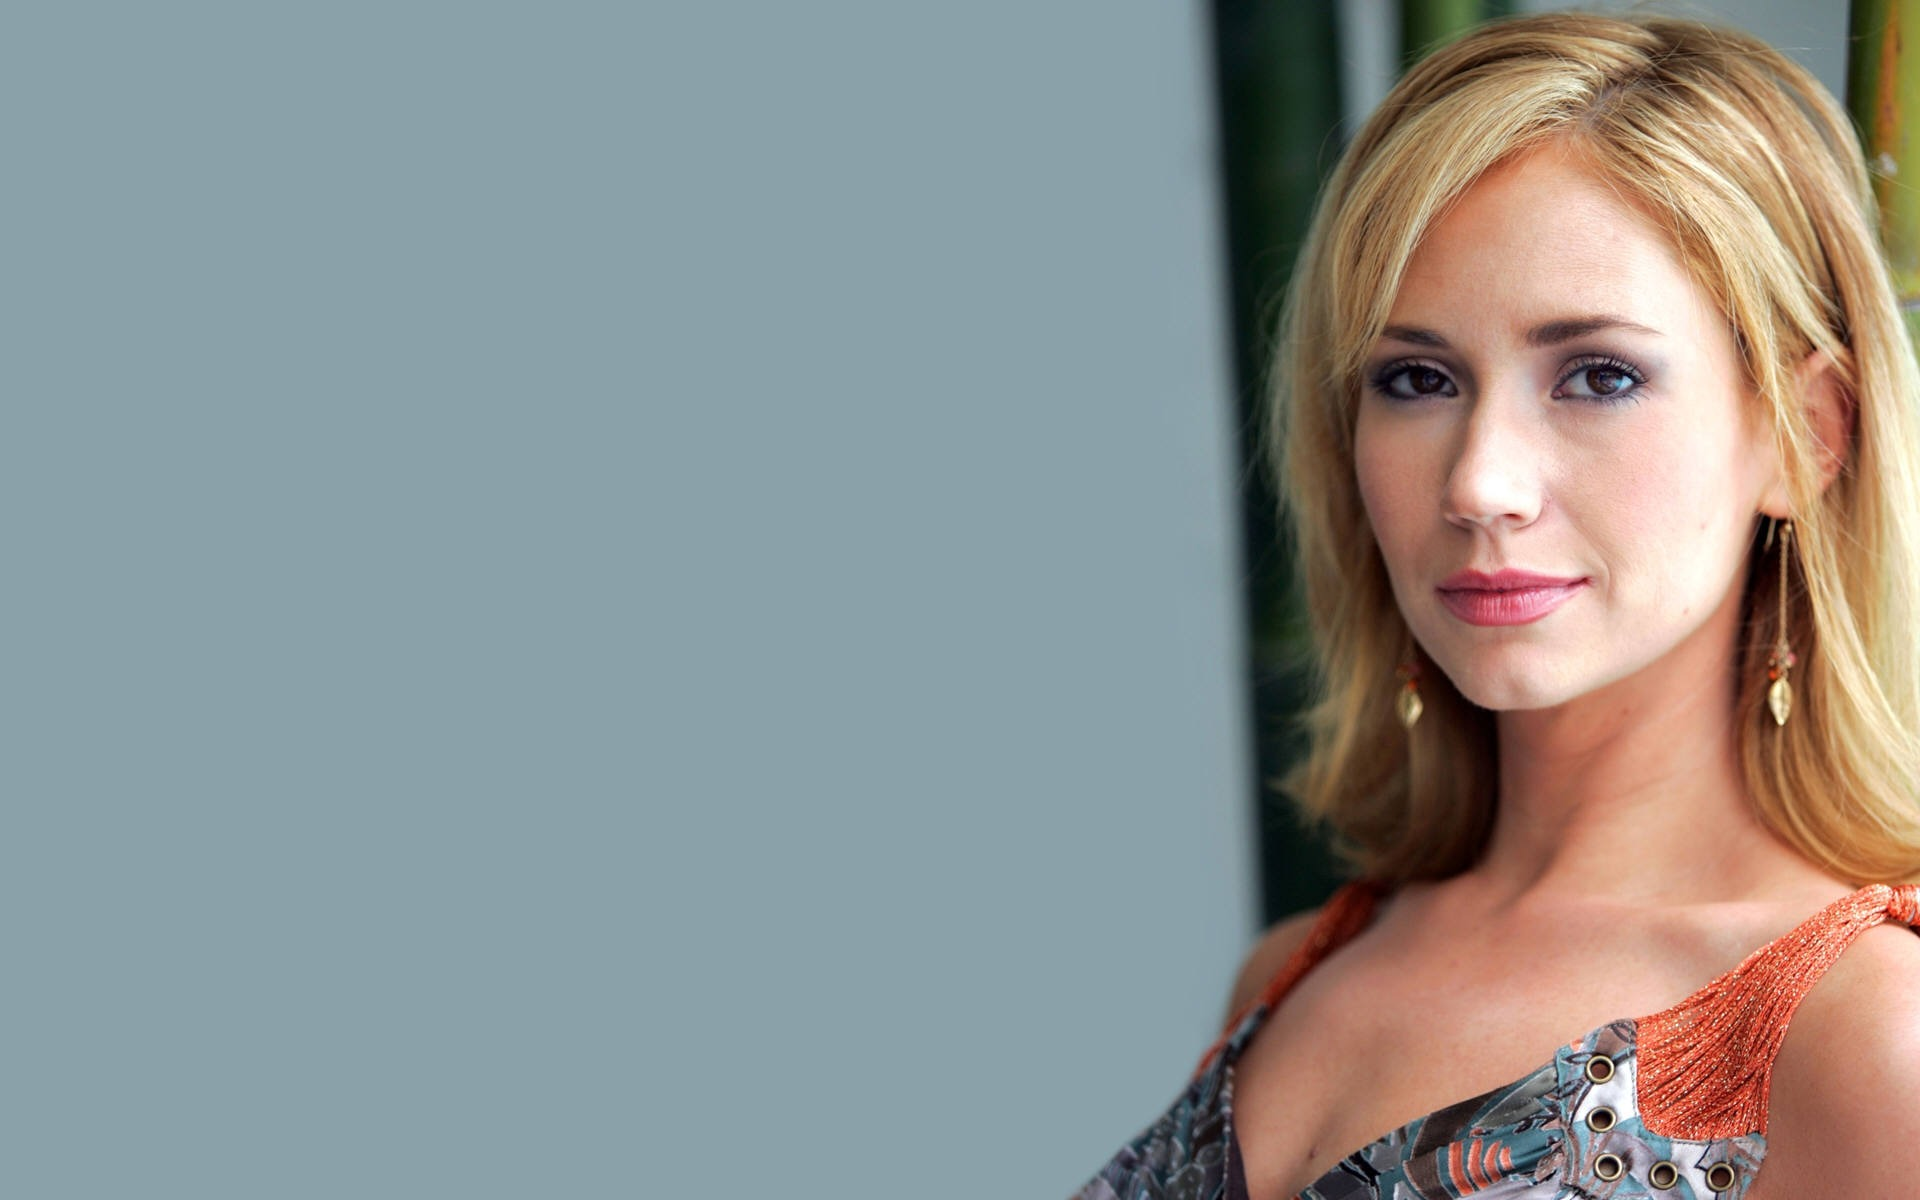 Ashley Jones #008 - 1920x1200 Wallpapers Pictures Photos Images